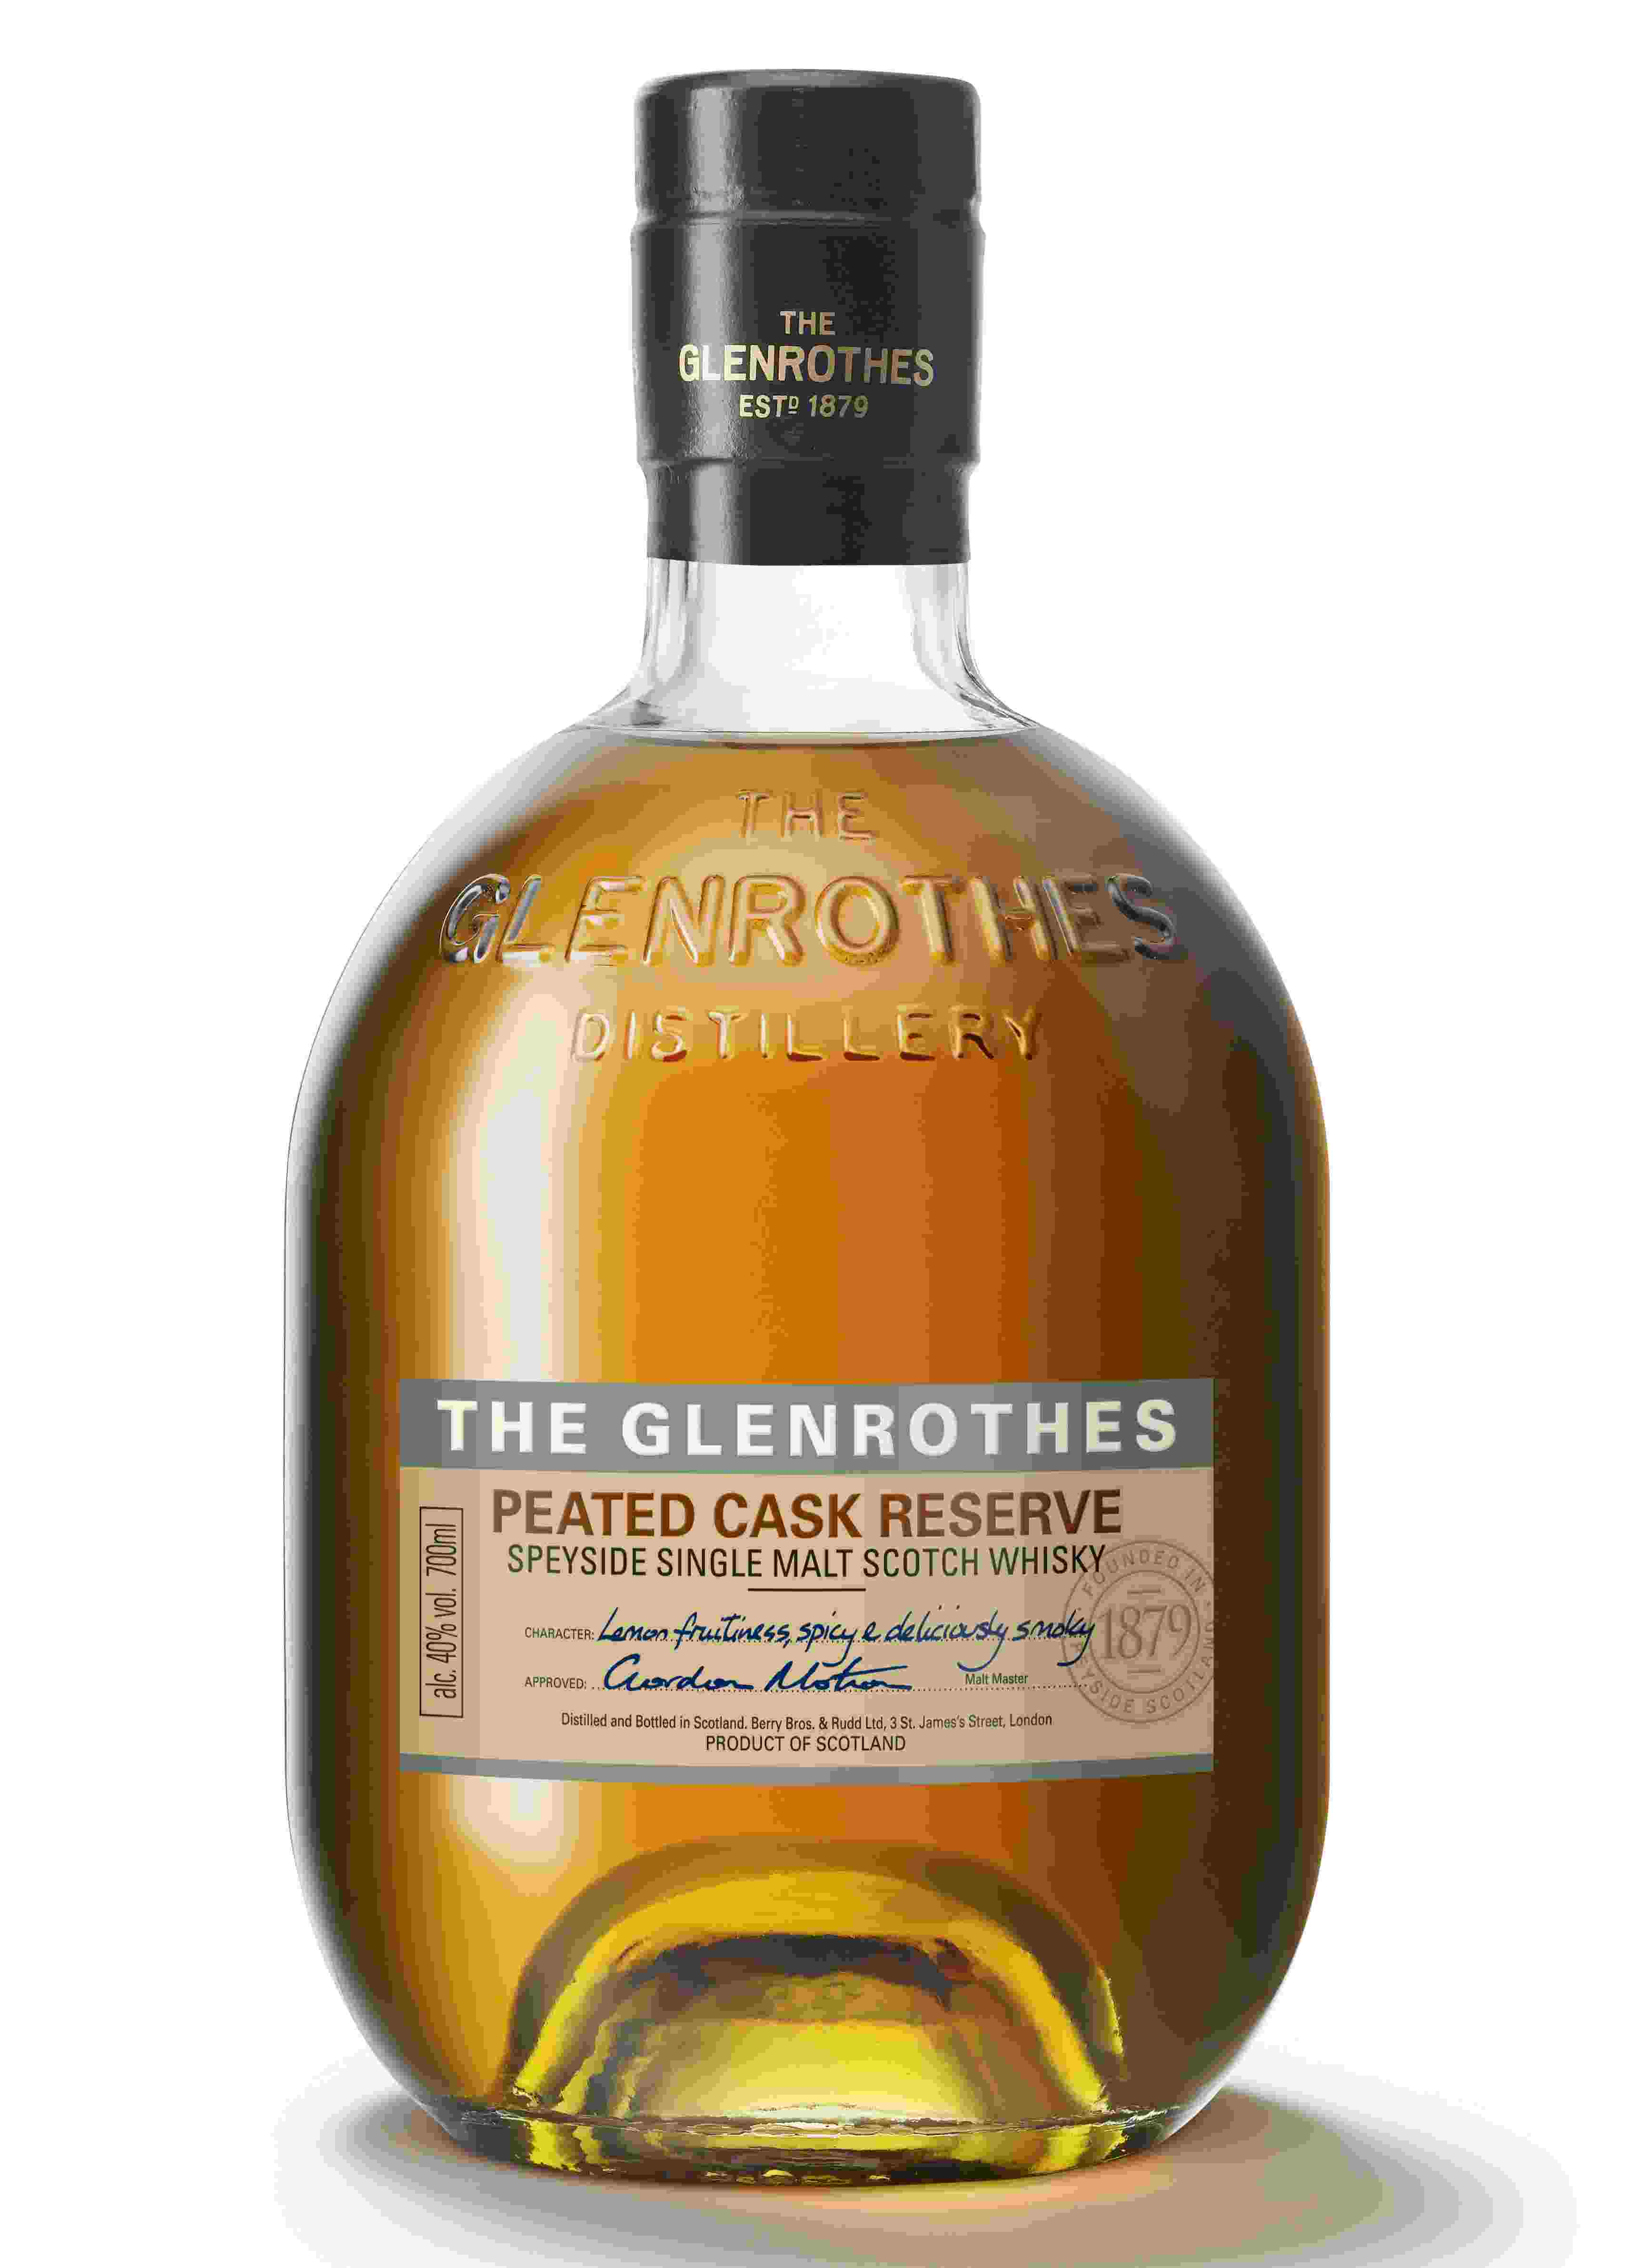 The Glenrothes Peated Cask